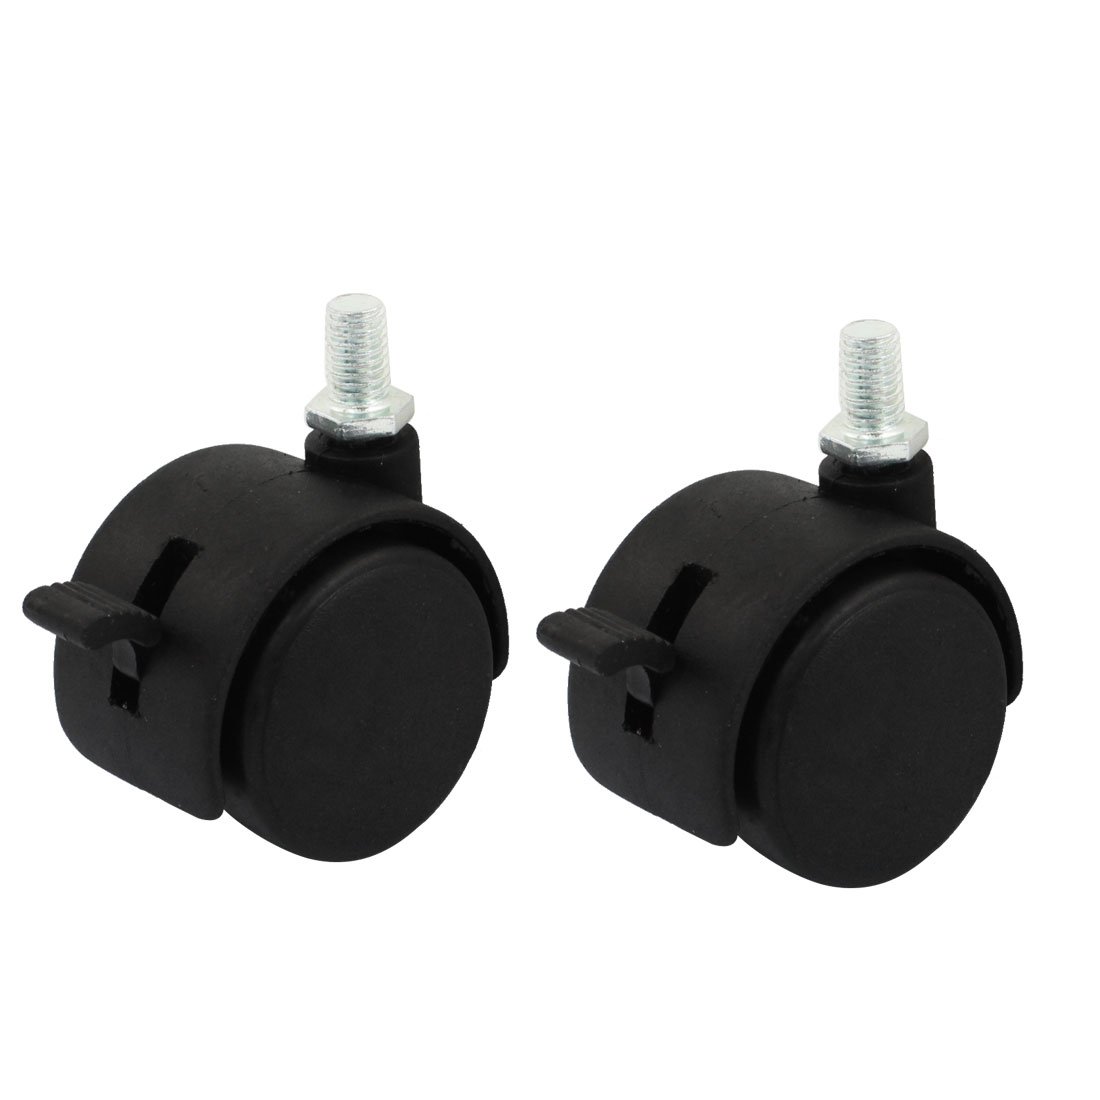 "2pcs 7.5mm Male Thread 1.5"" Round Rotatable Double Wheel Design Swivel Brake Caster for Shopping Carts"